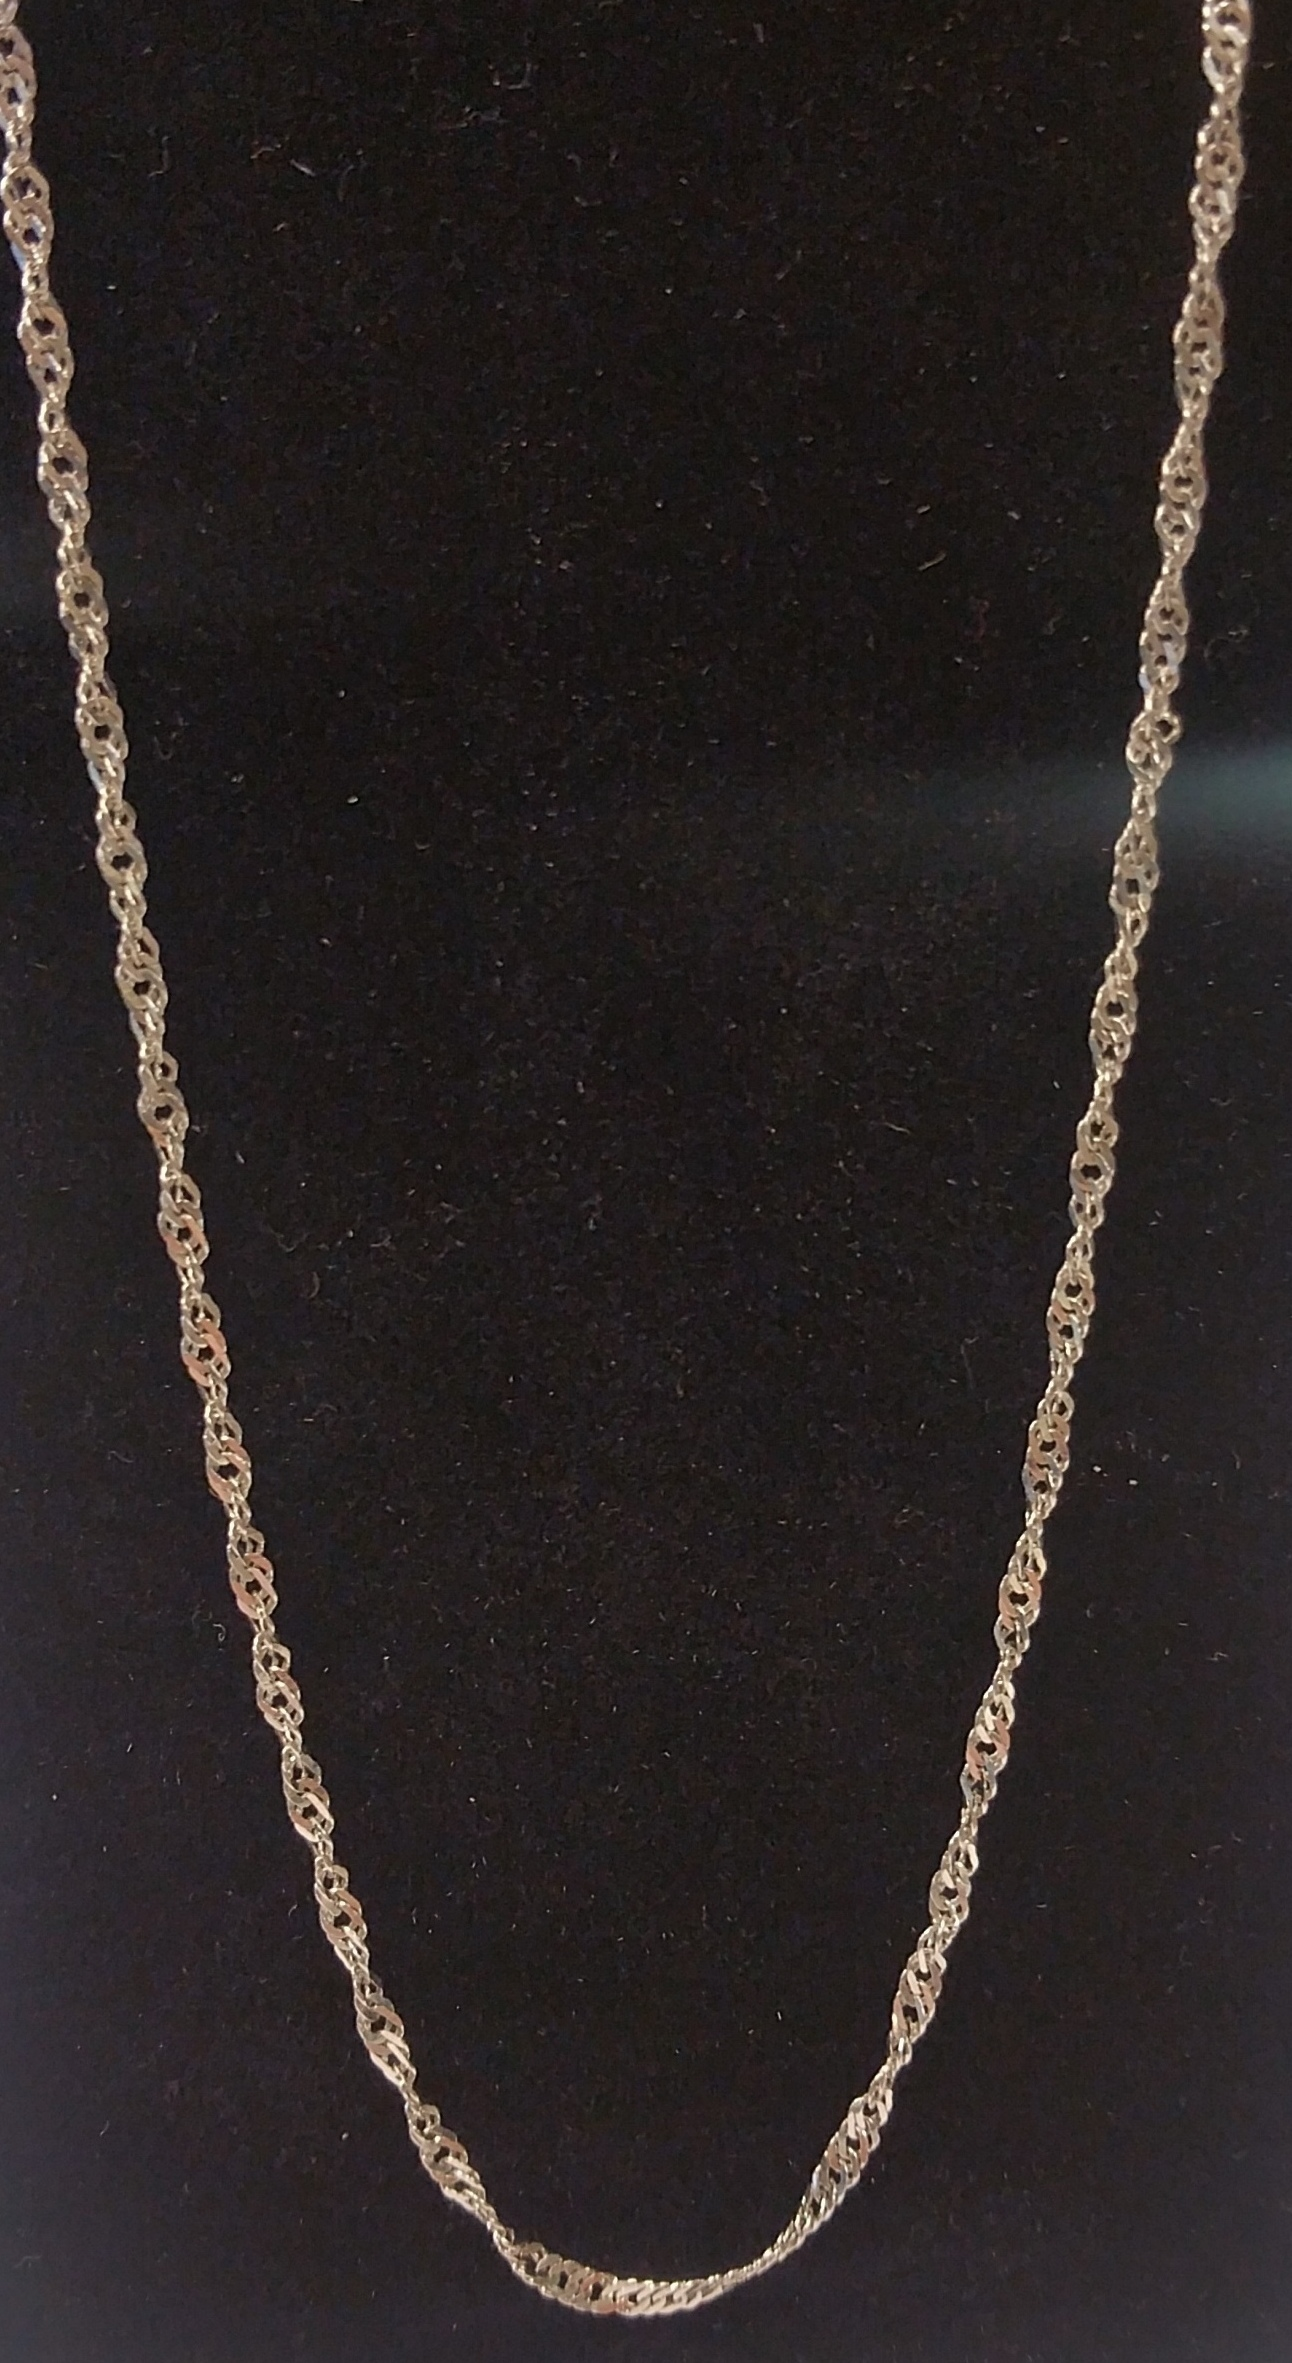 WHITE GOLD TWIST CHAIN